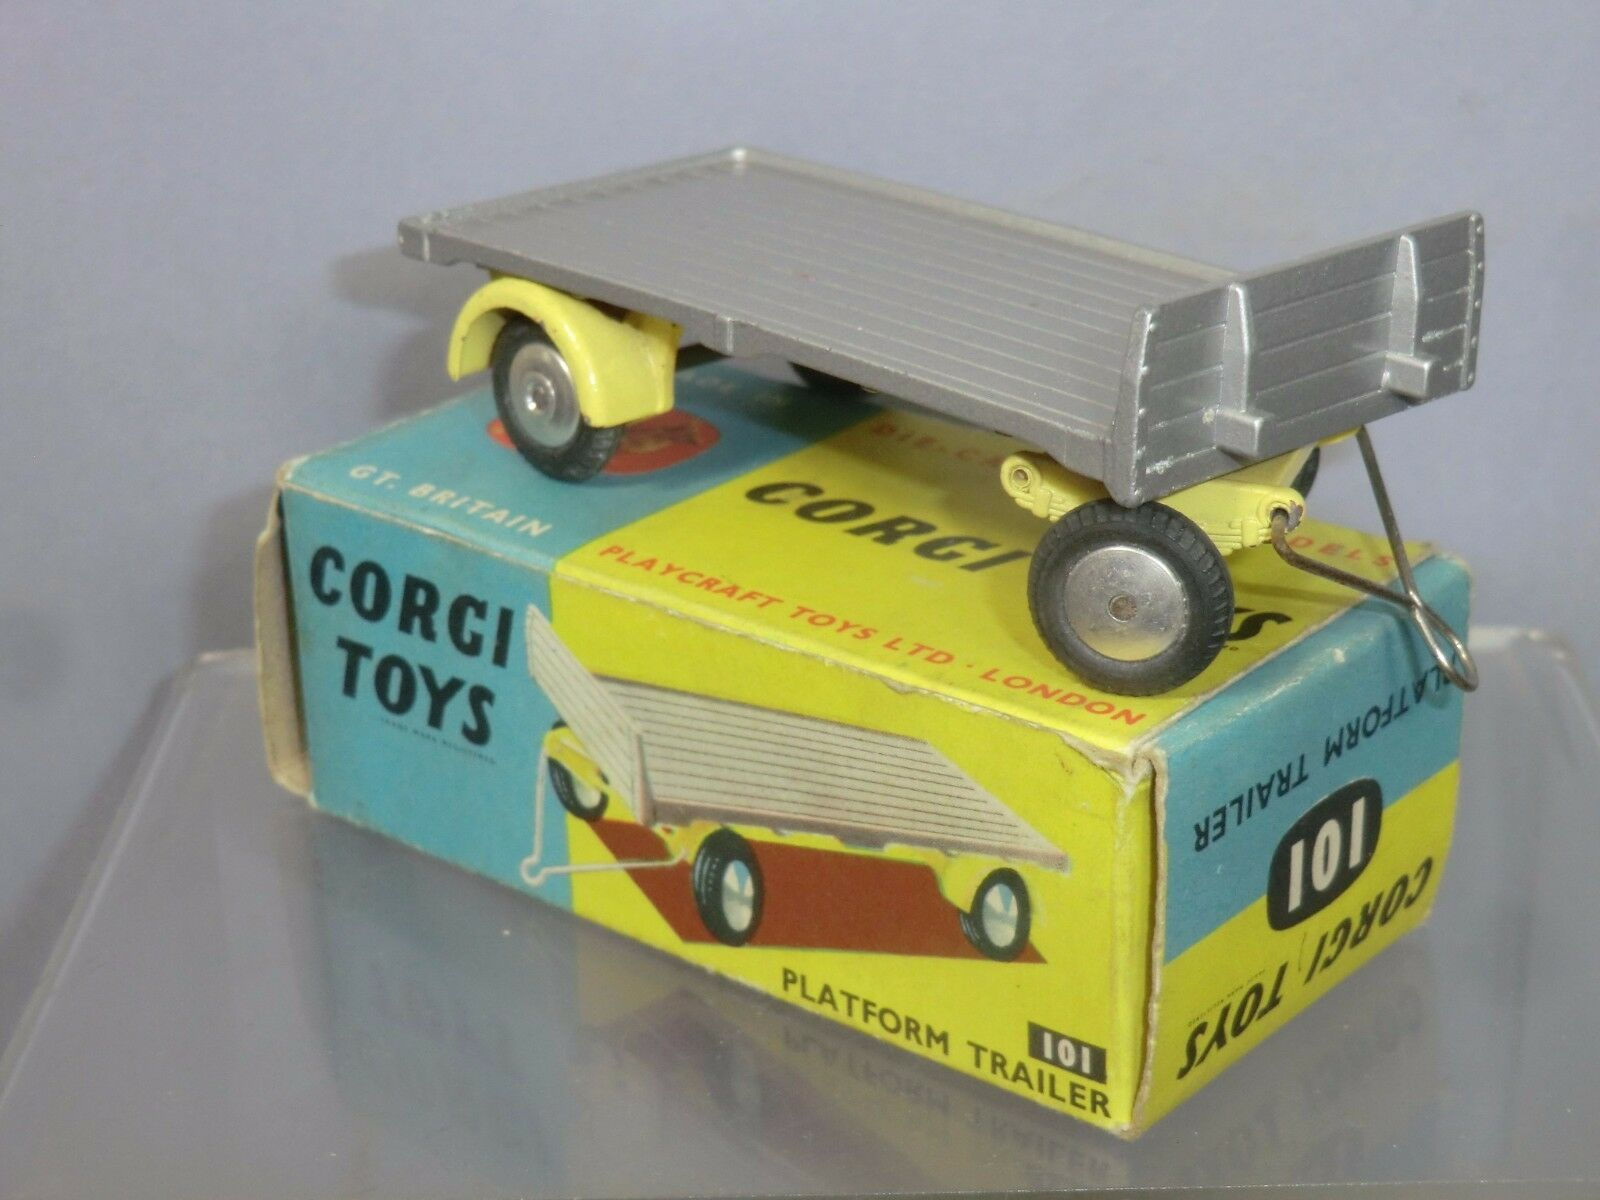 CORGI TOYS MODEL No.101    PLATFORM   TRAILER  VN MIB